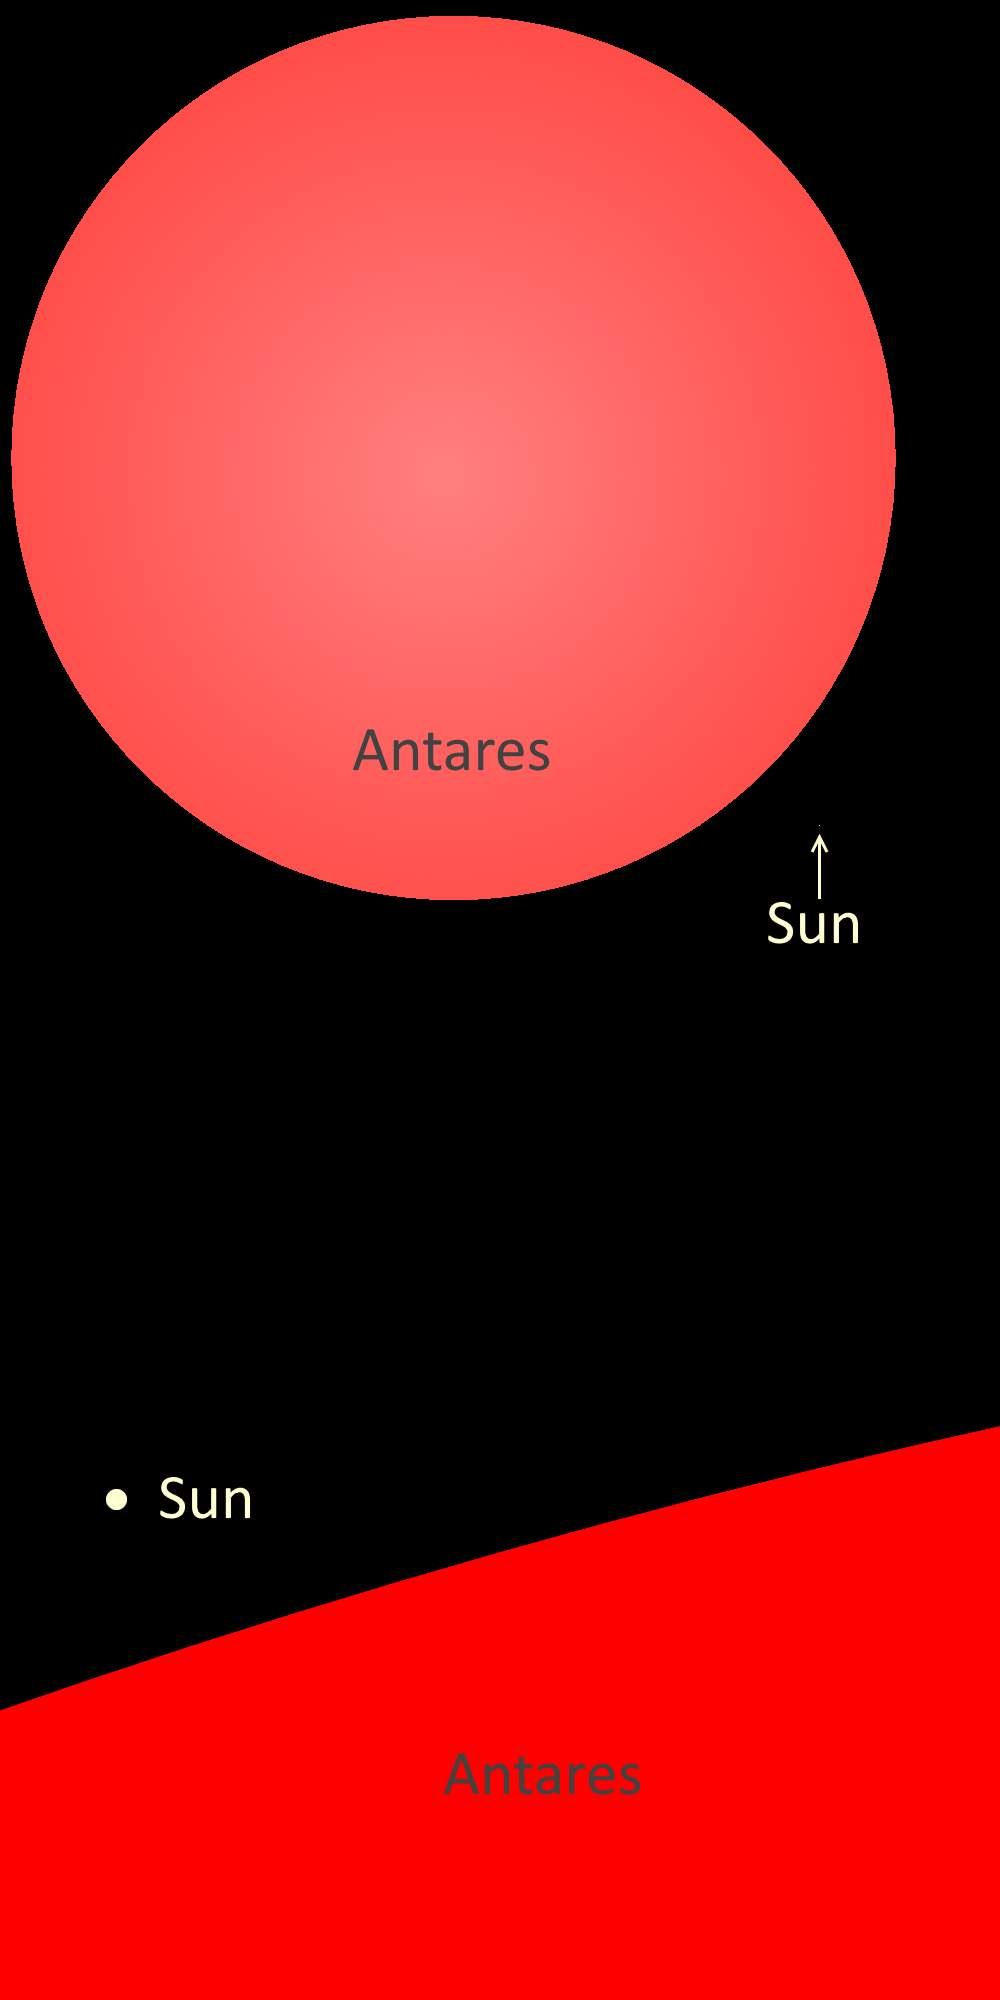 Antares vs Sun size comparison - Our Planet Antares Compared To The Sun